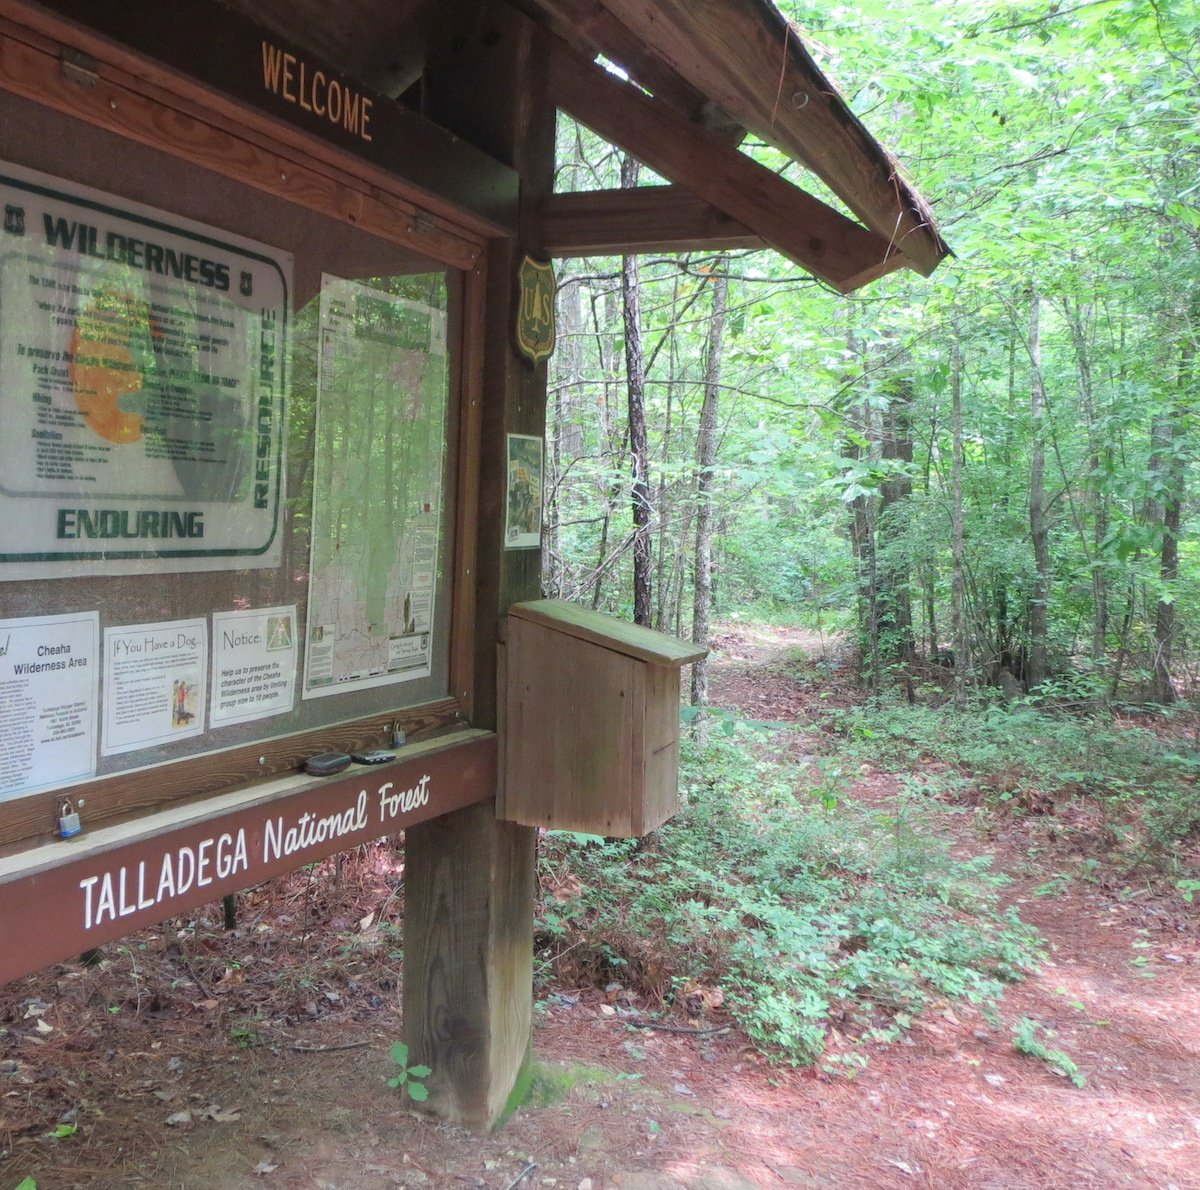 Welcome sign, Talladega National Forest.